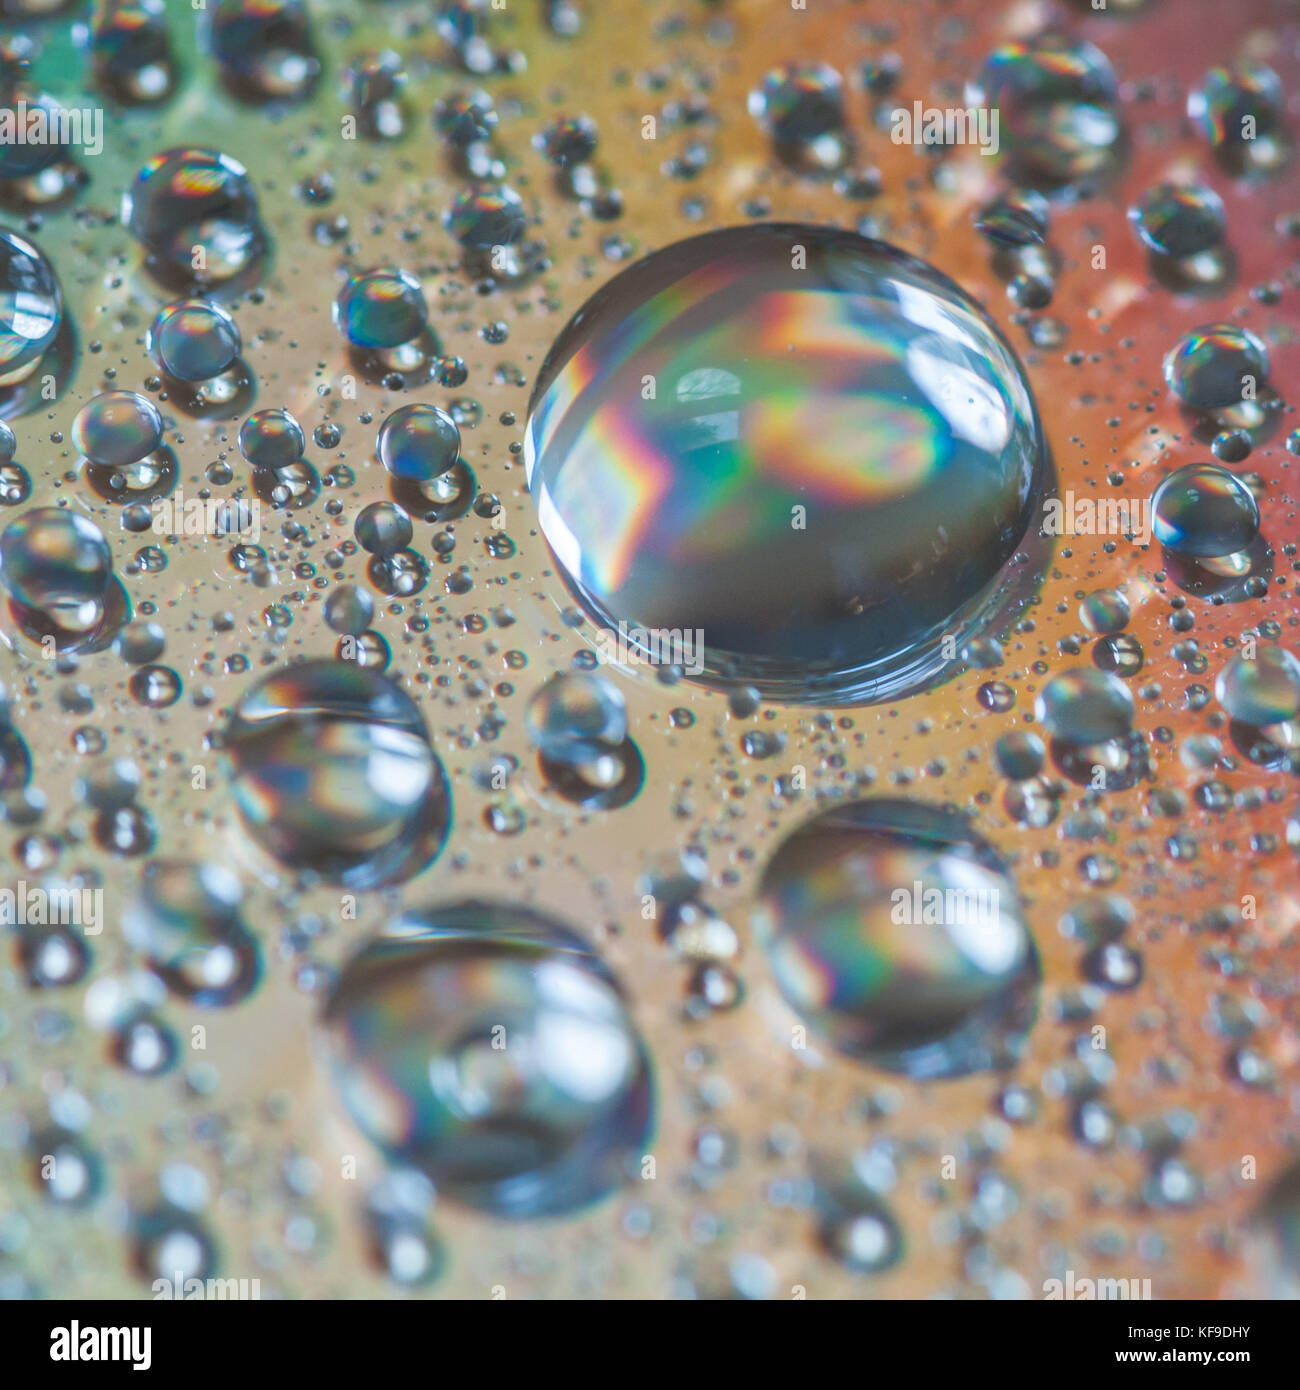 A macro shot of water droplets on the surface of a compact disc. - Stock Image